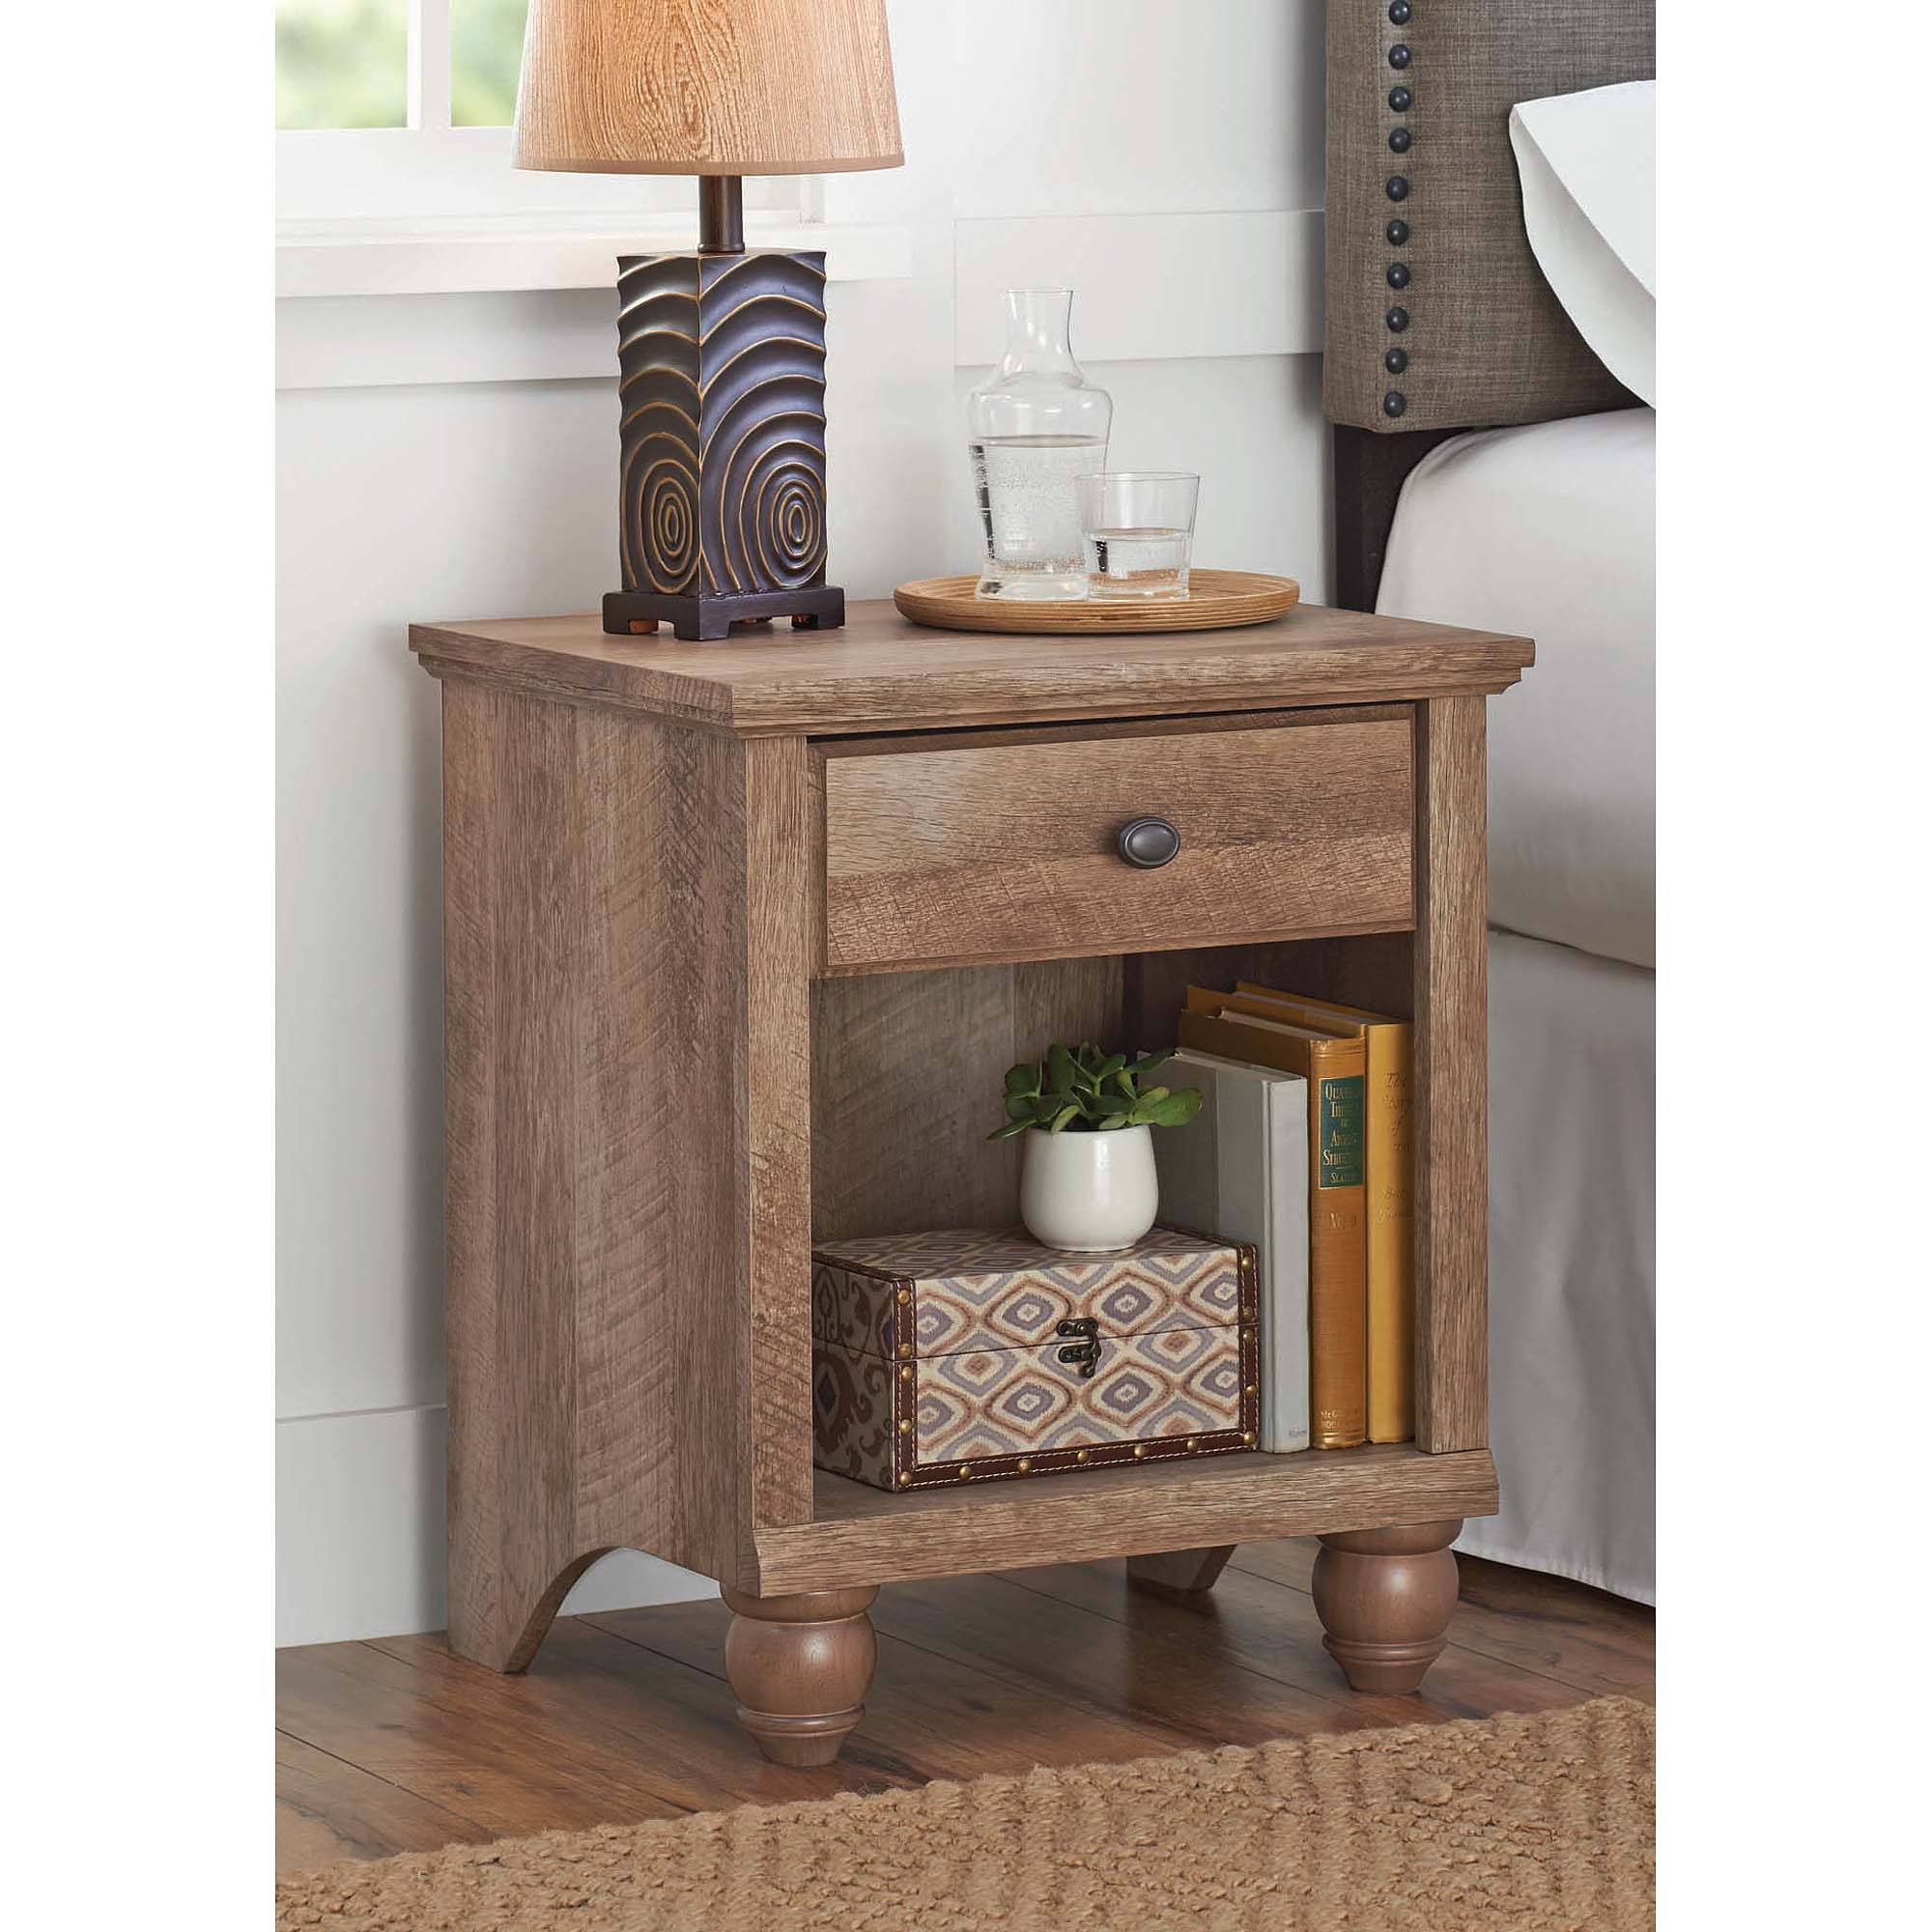 better homes gardens crossmill accent table weathered finish small half circle floor lamp black gloss cube side cream target low square coffee white wood end marble hot pink